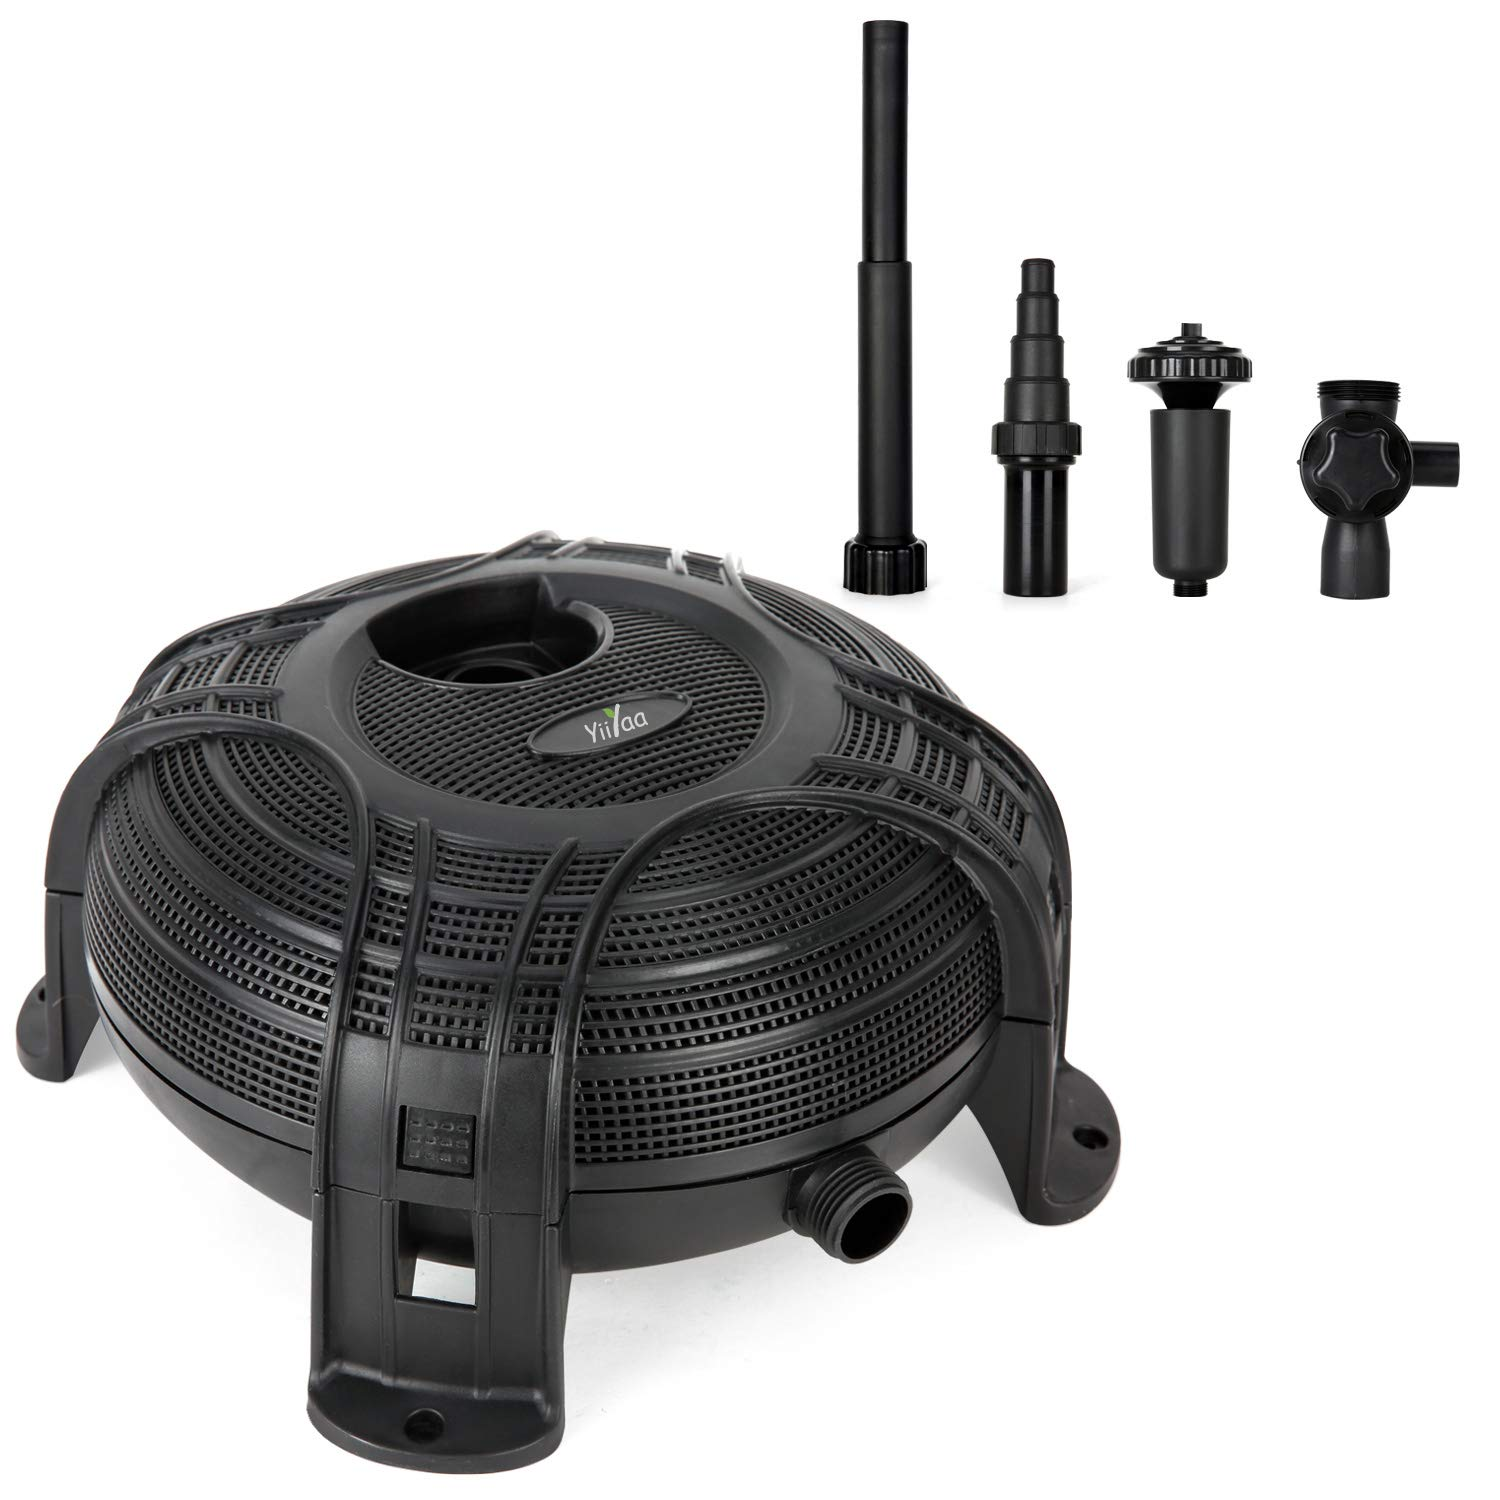 Upgraded Amphibious Submersible Water Pump 1500GPH 90W with Dry Burning Prevention Function 7.6m Long Power Cord , Nozzles for Aquarium Fish,Tank,Fountain,Pond,Hydroponics,used in or out of water